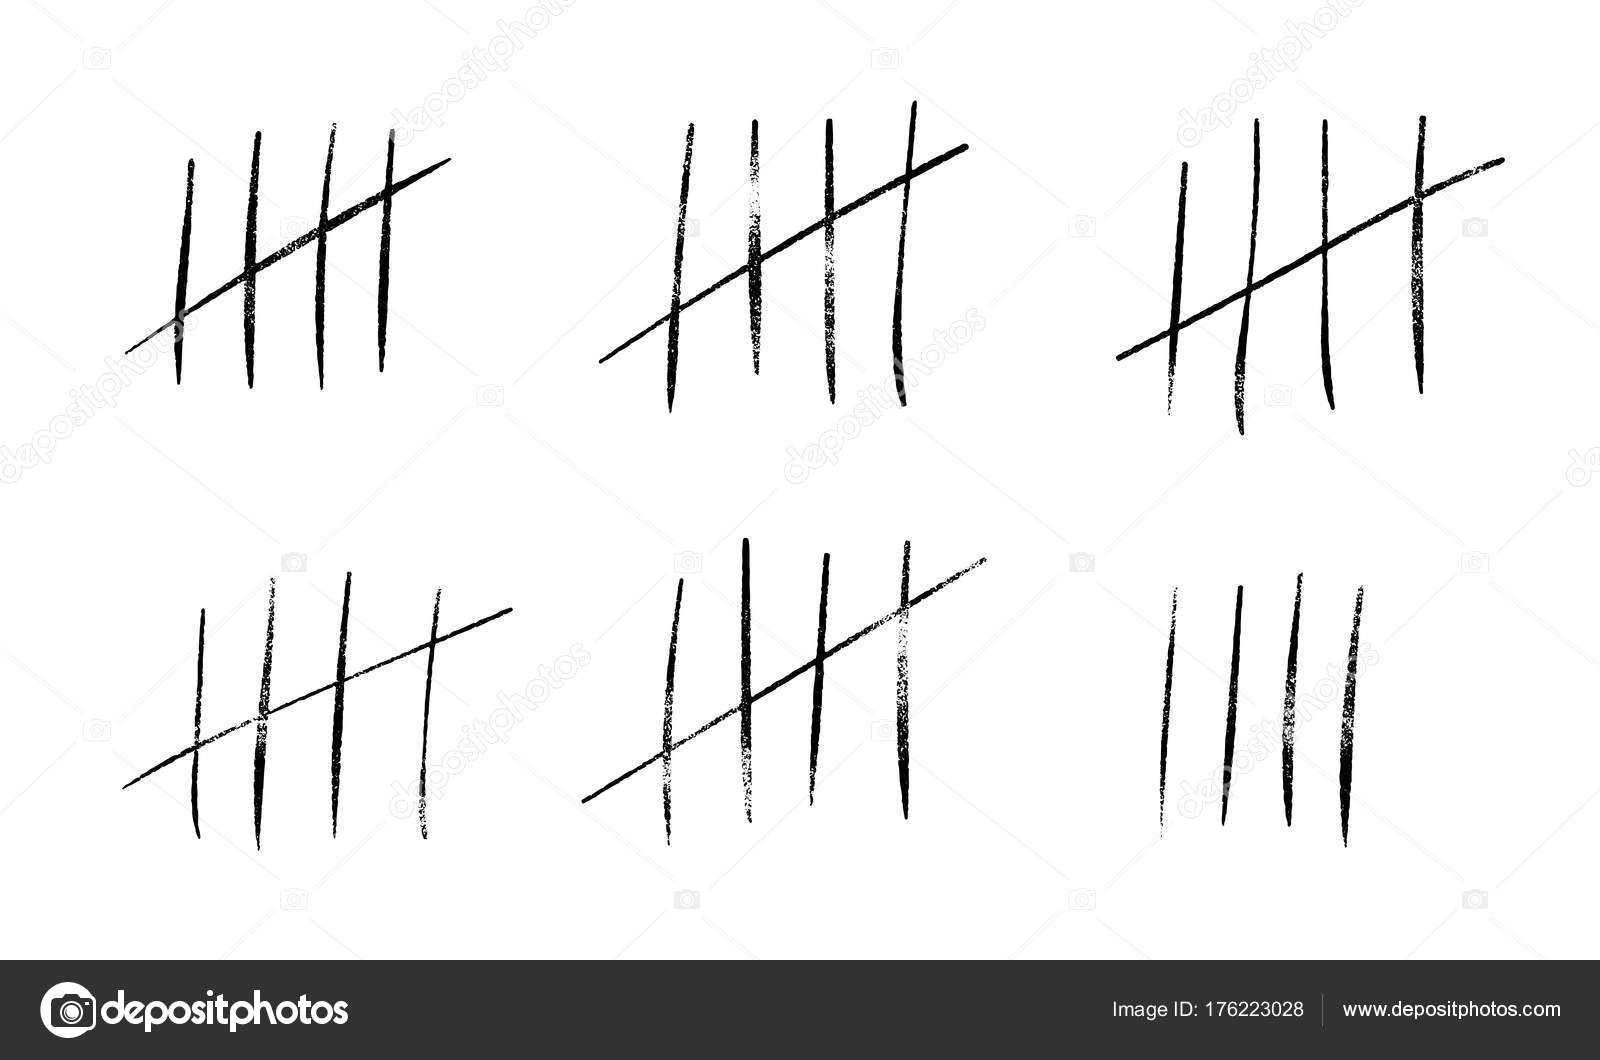 tally marks count or prison wall sticks lines counter vector hash